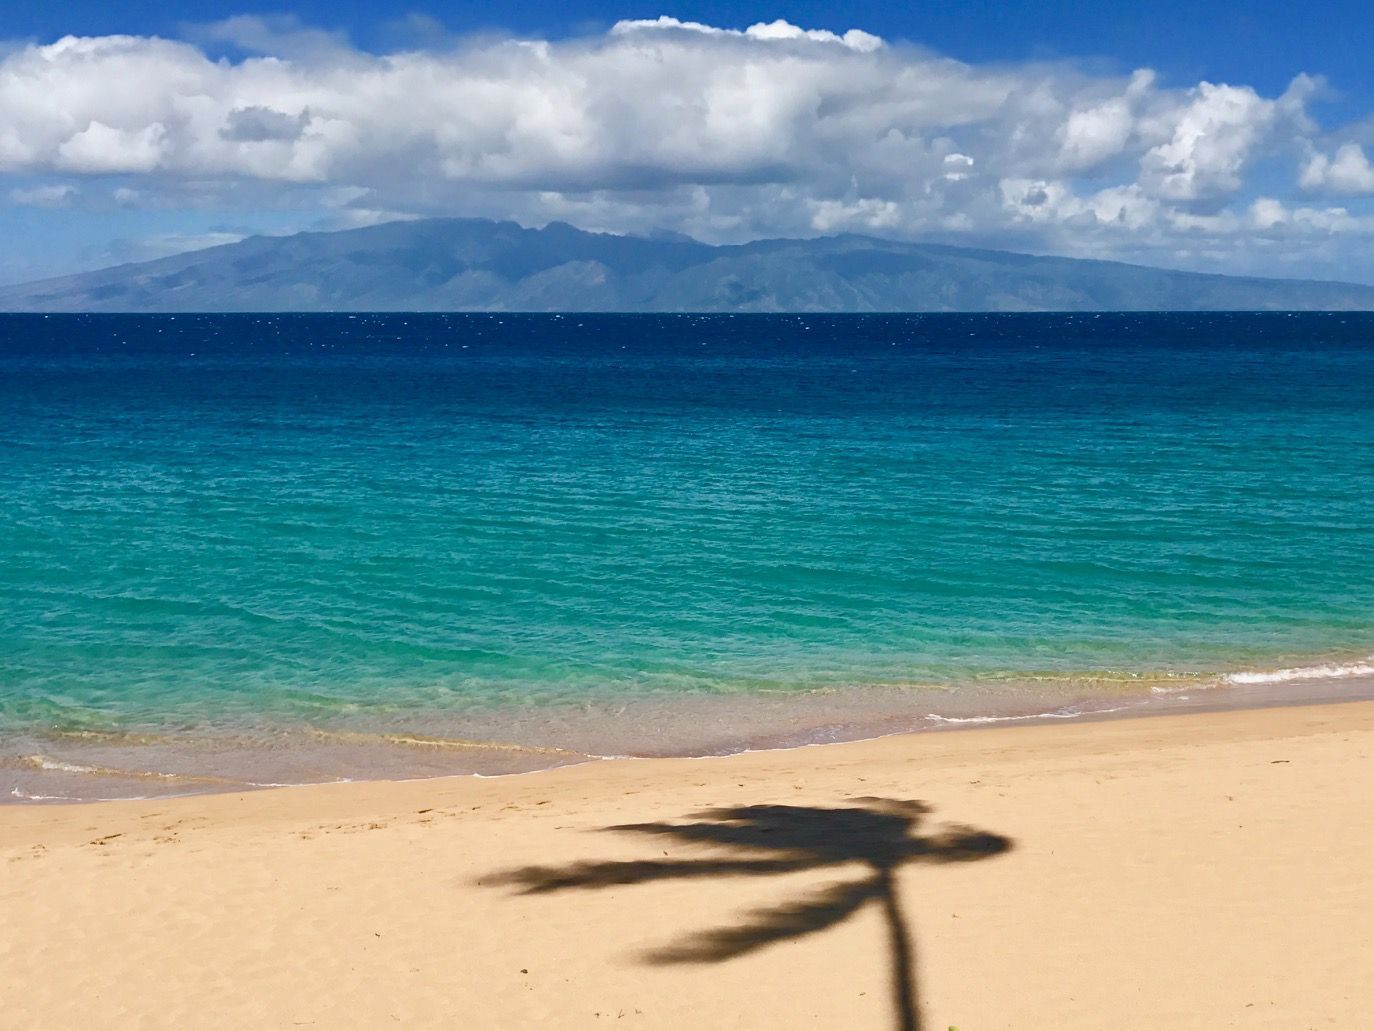 The View From Boardwalk At Airport Beach On West Maui